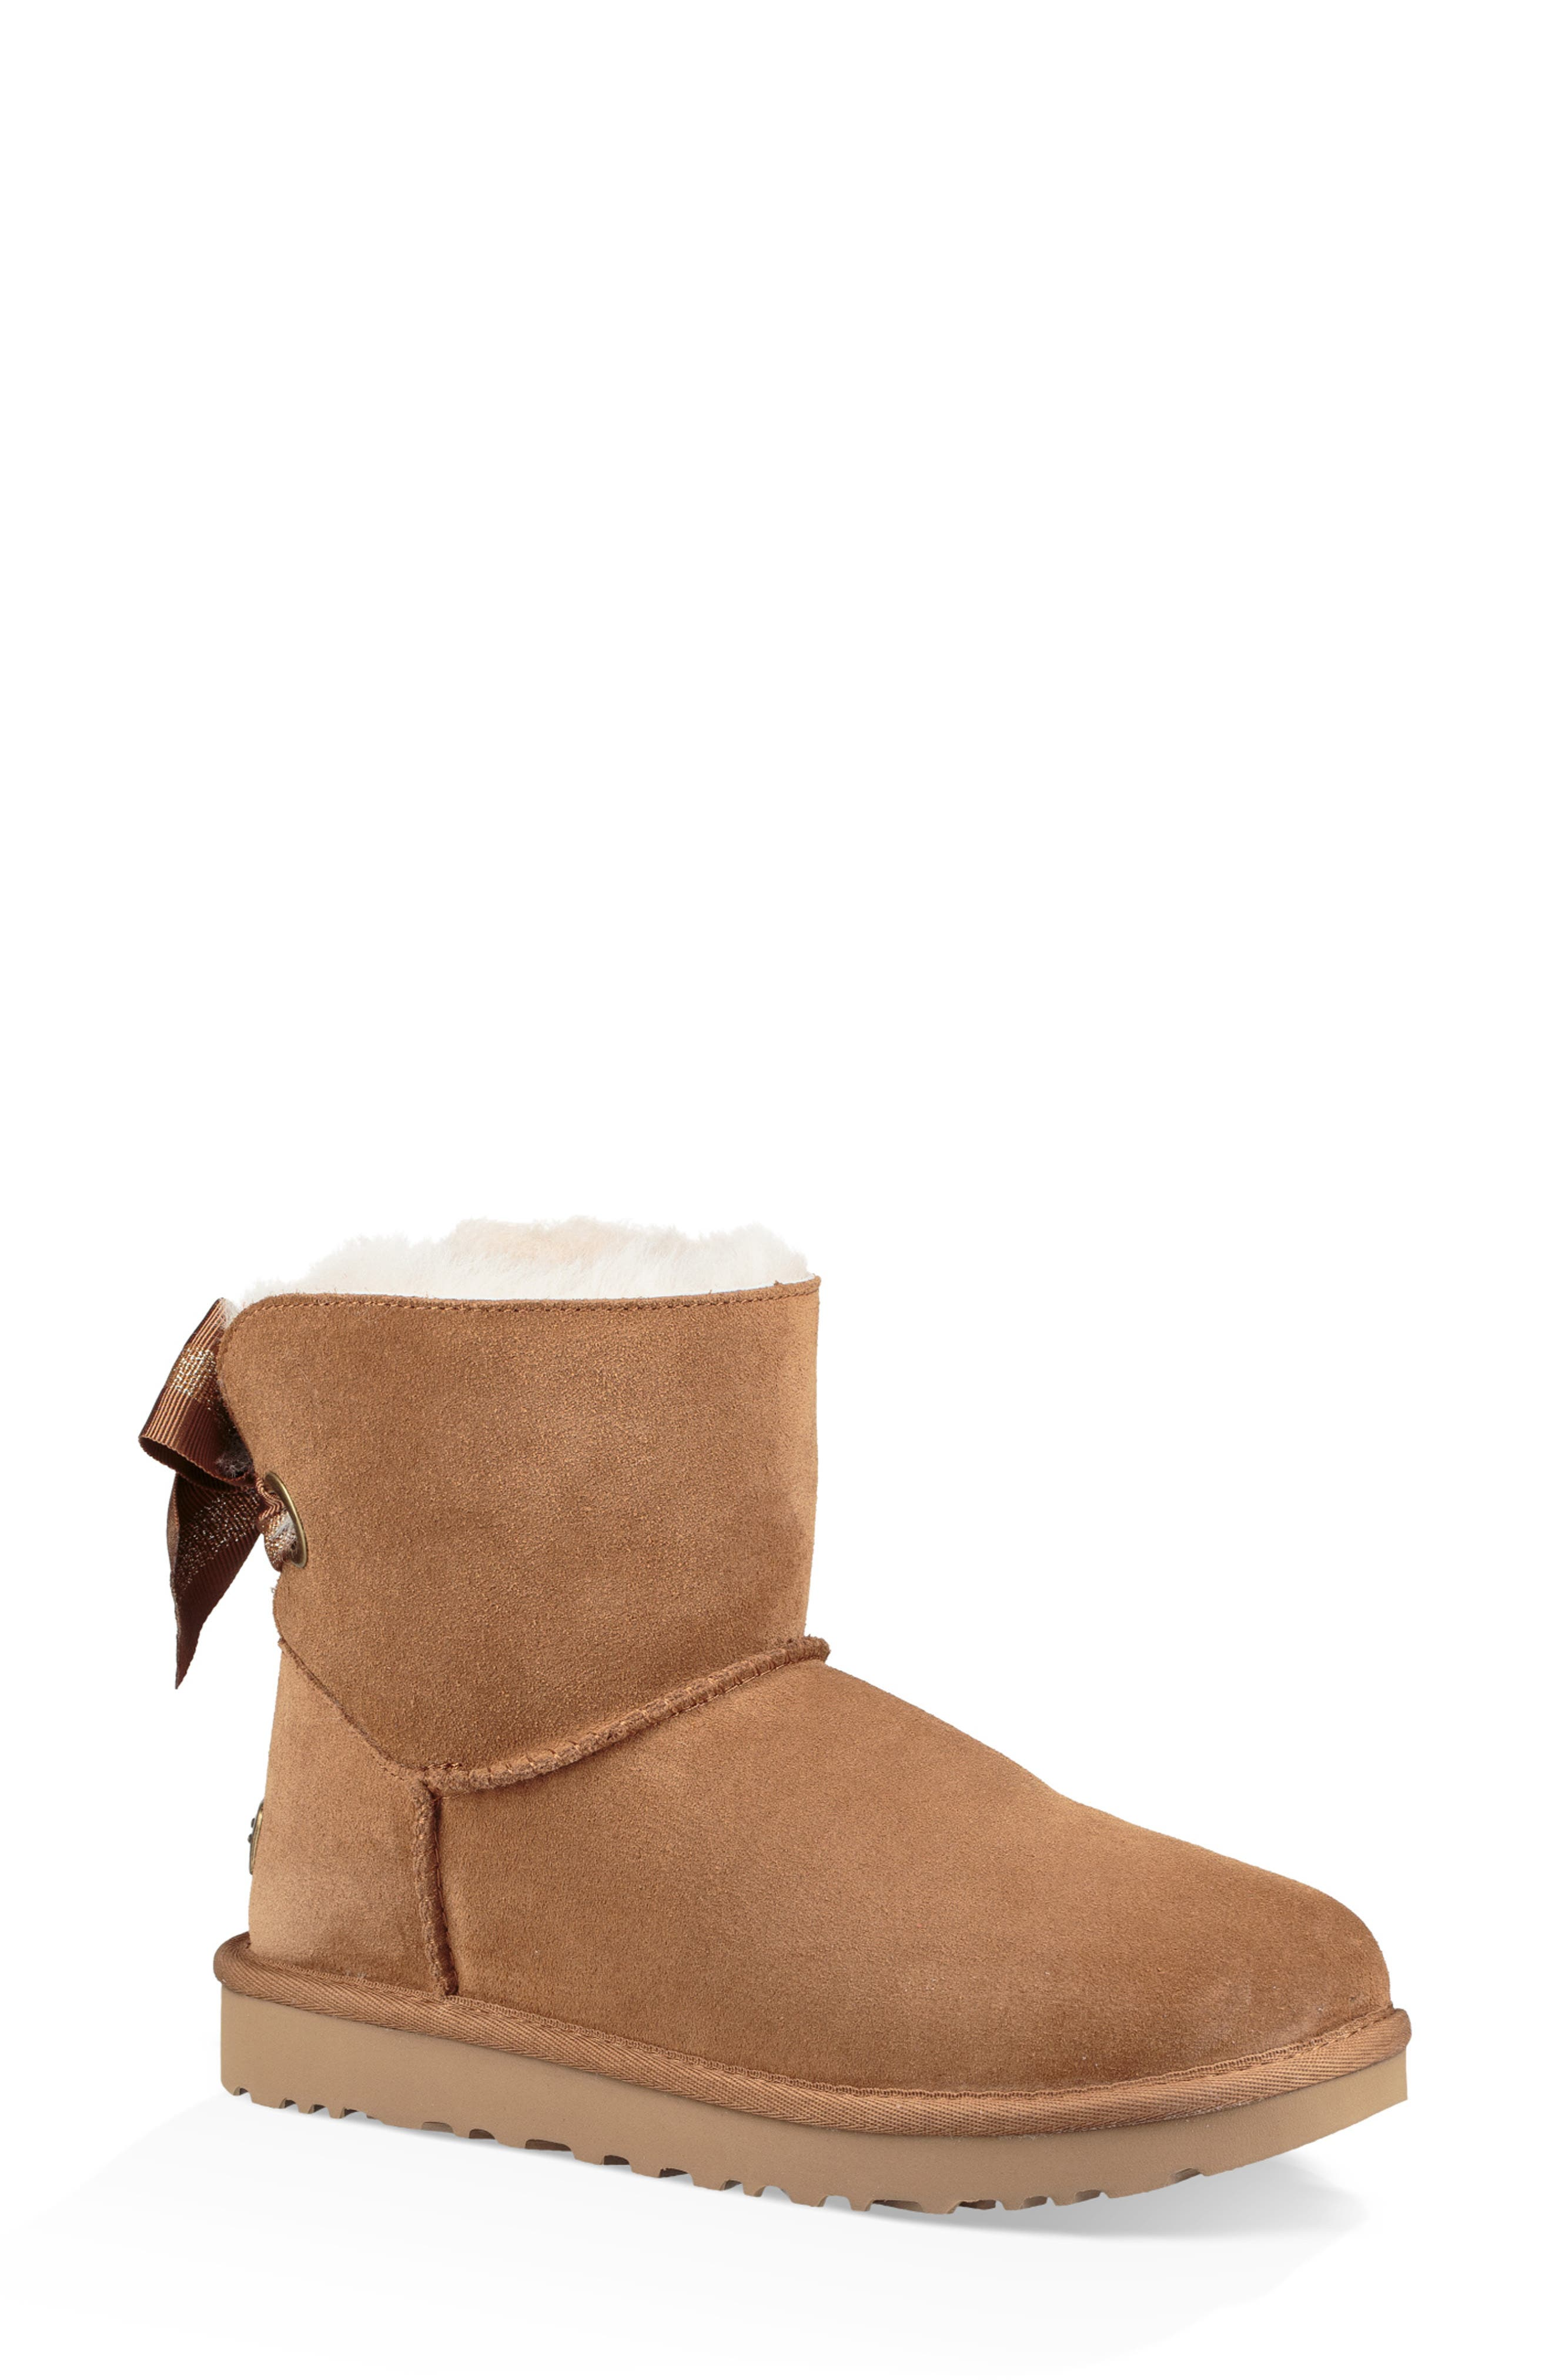 Customizable Bailey Bow Mini Genuine Shearling Bootie,                             Main thumbnail 1, color,                             CHESTNUT SUEDE